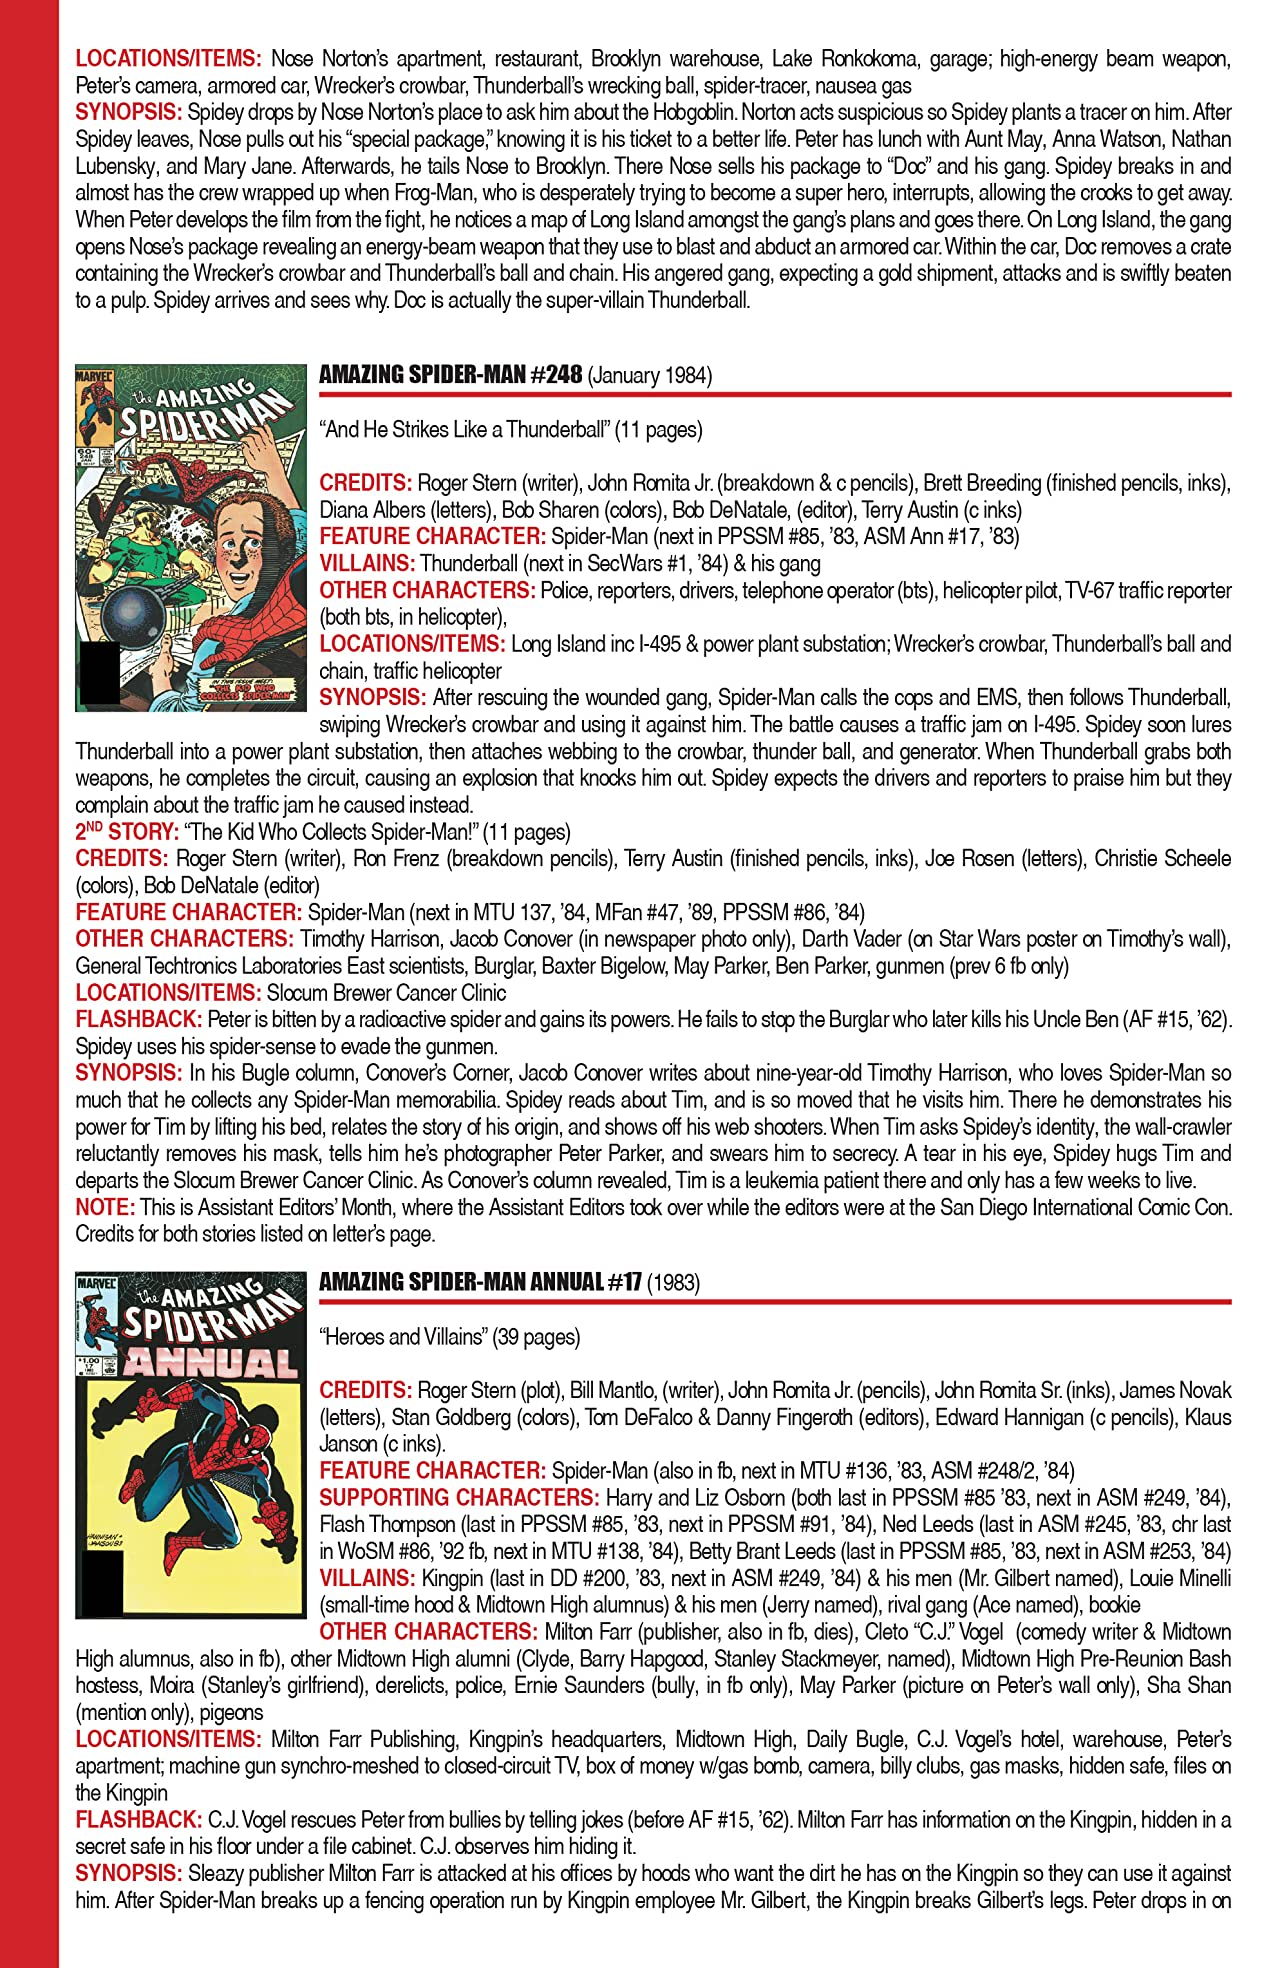 Official Index to the Marvel Universe (2009-2010) #6